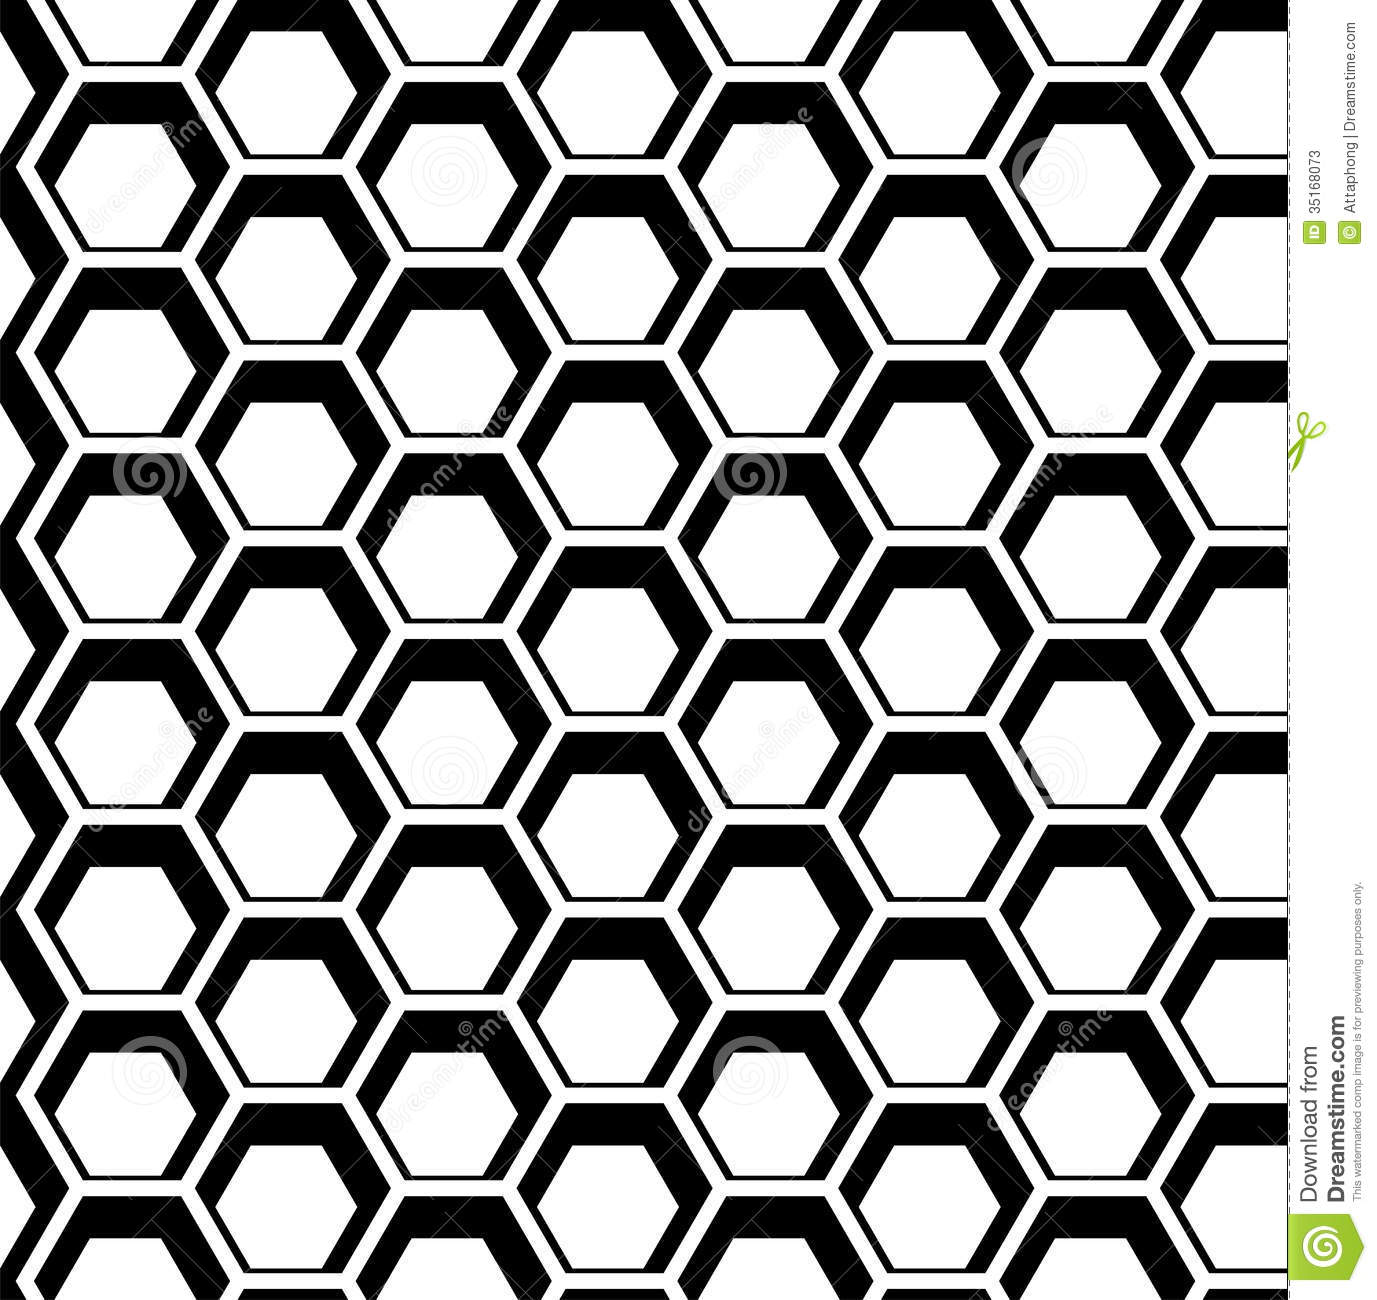 Seamless hexagon vector stock vector. Image of cellular